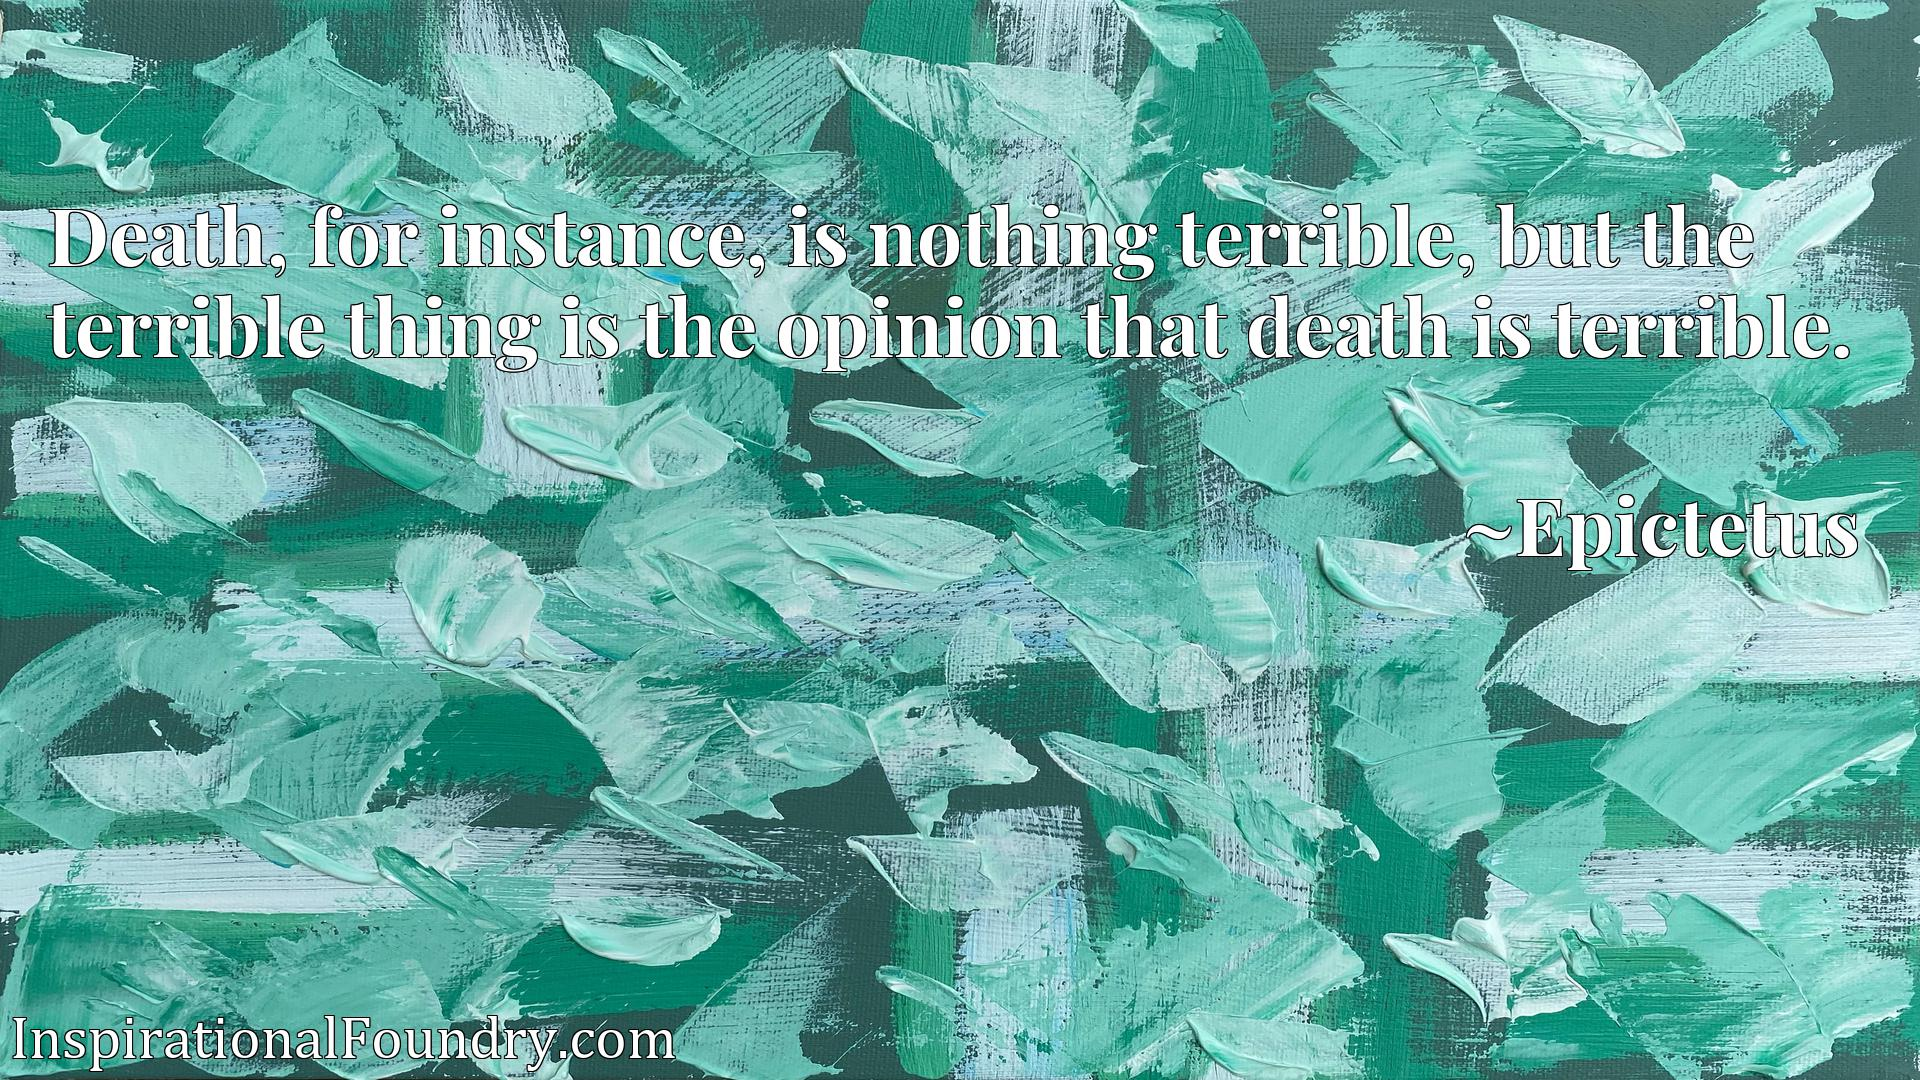 Death, for instance, is nothing terrible, but the terrible thing is the opinion that death is terrible.